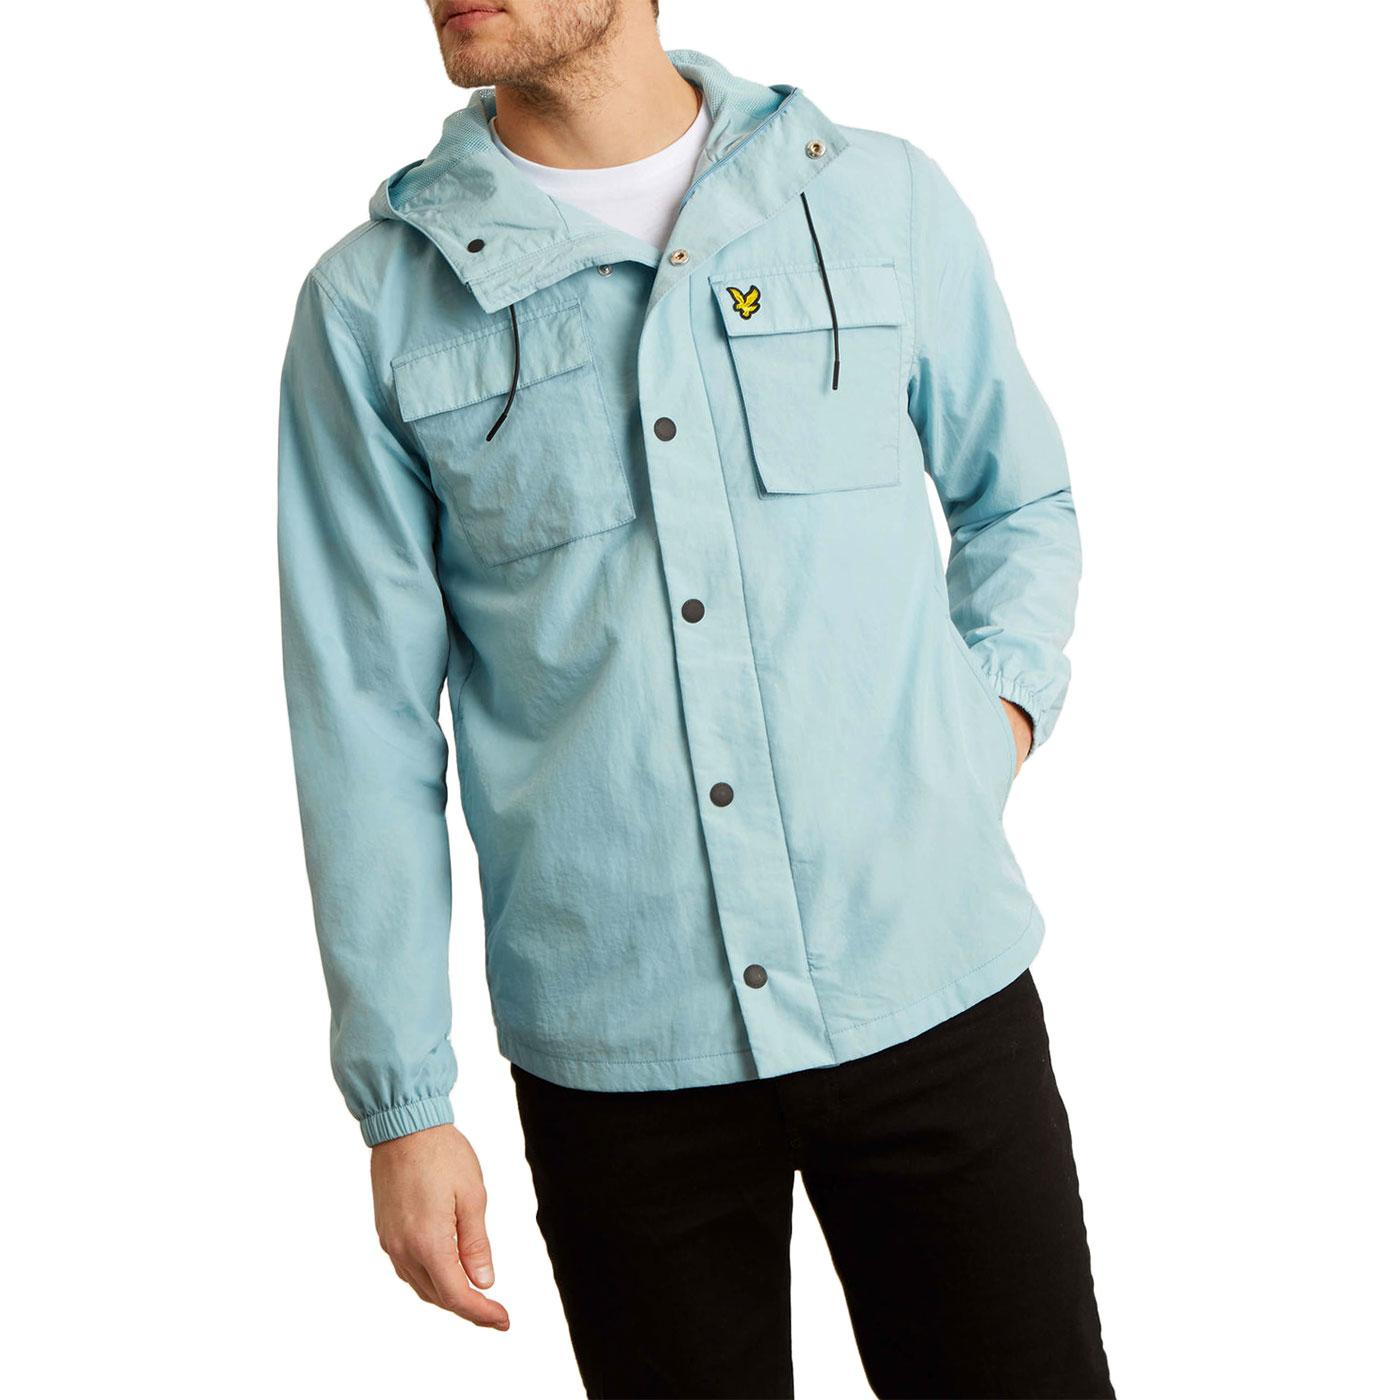 LYLE & SCOTT Retro Hooded Pocket Jacket BLUE SHORE